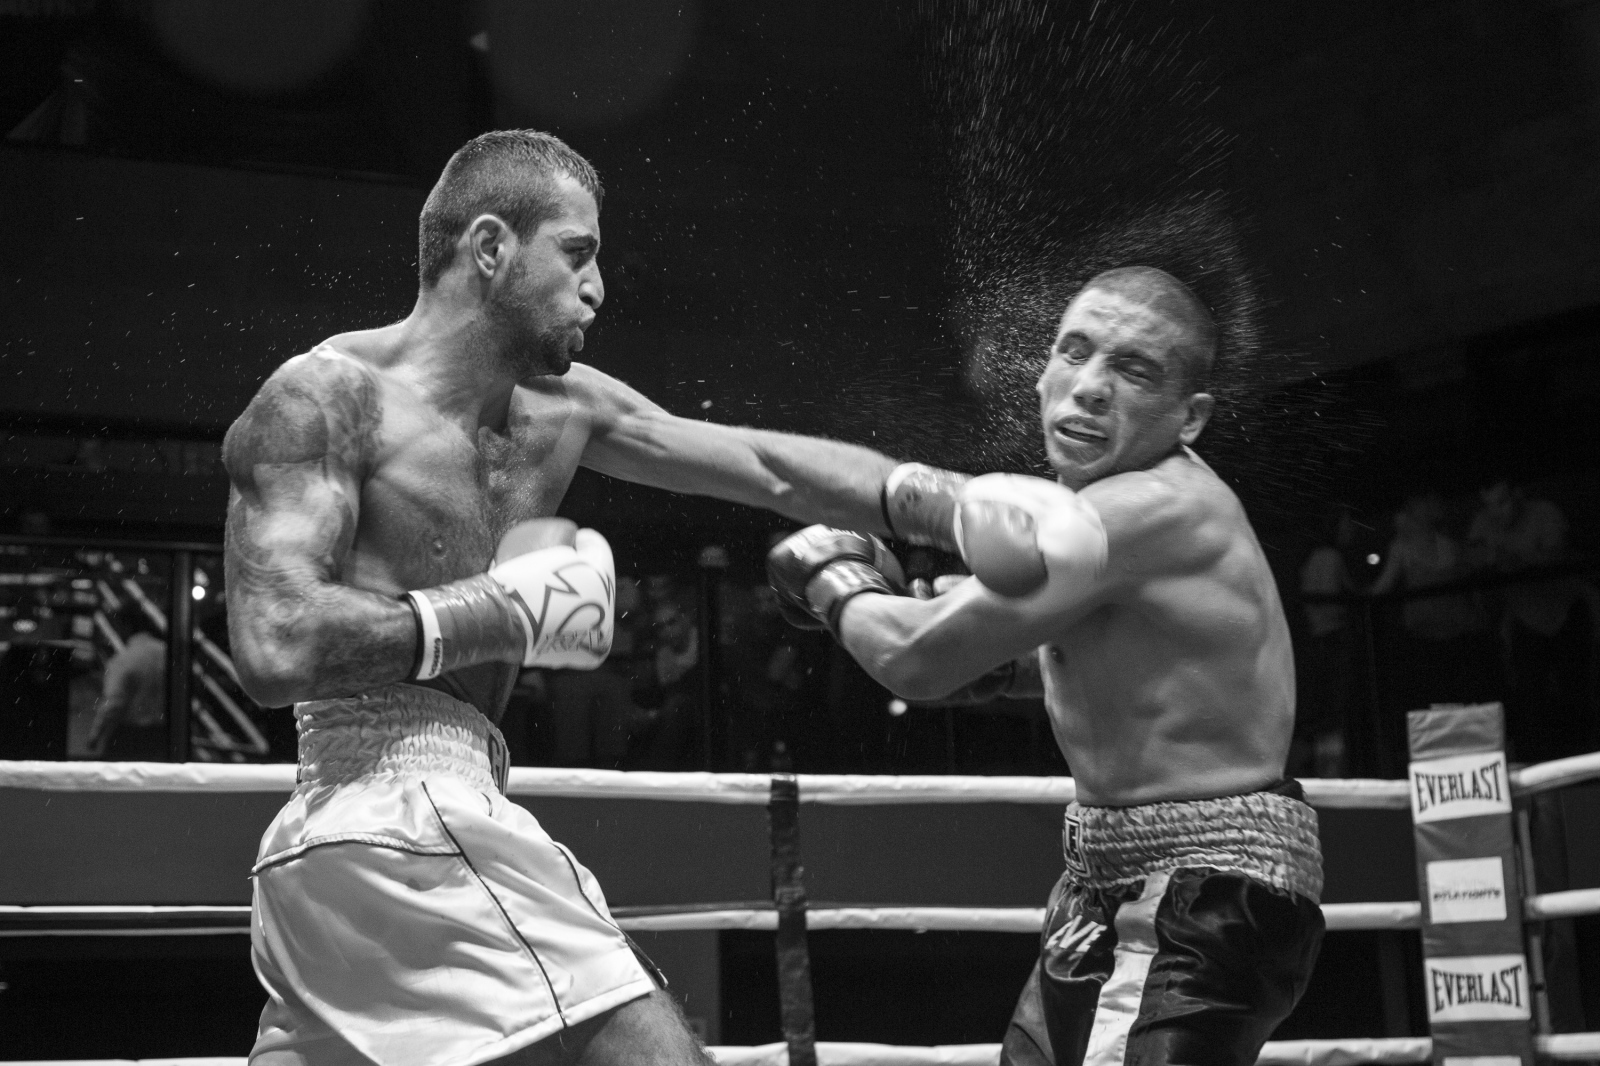 Art and Documentary Photography - Loading boxing-25.jpg